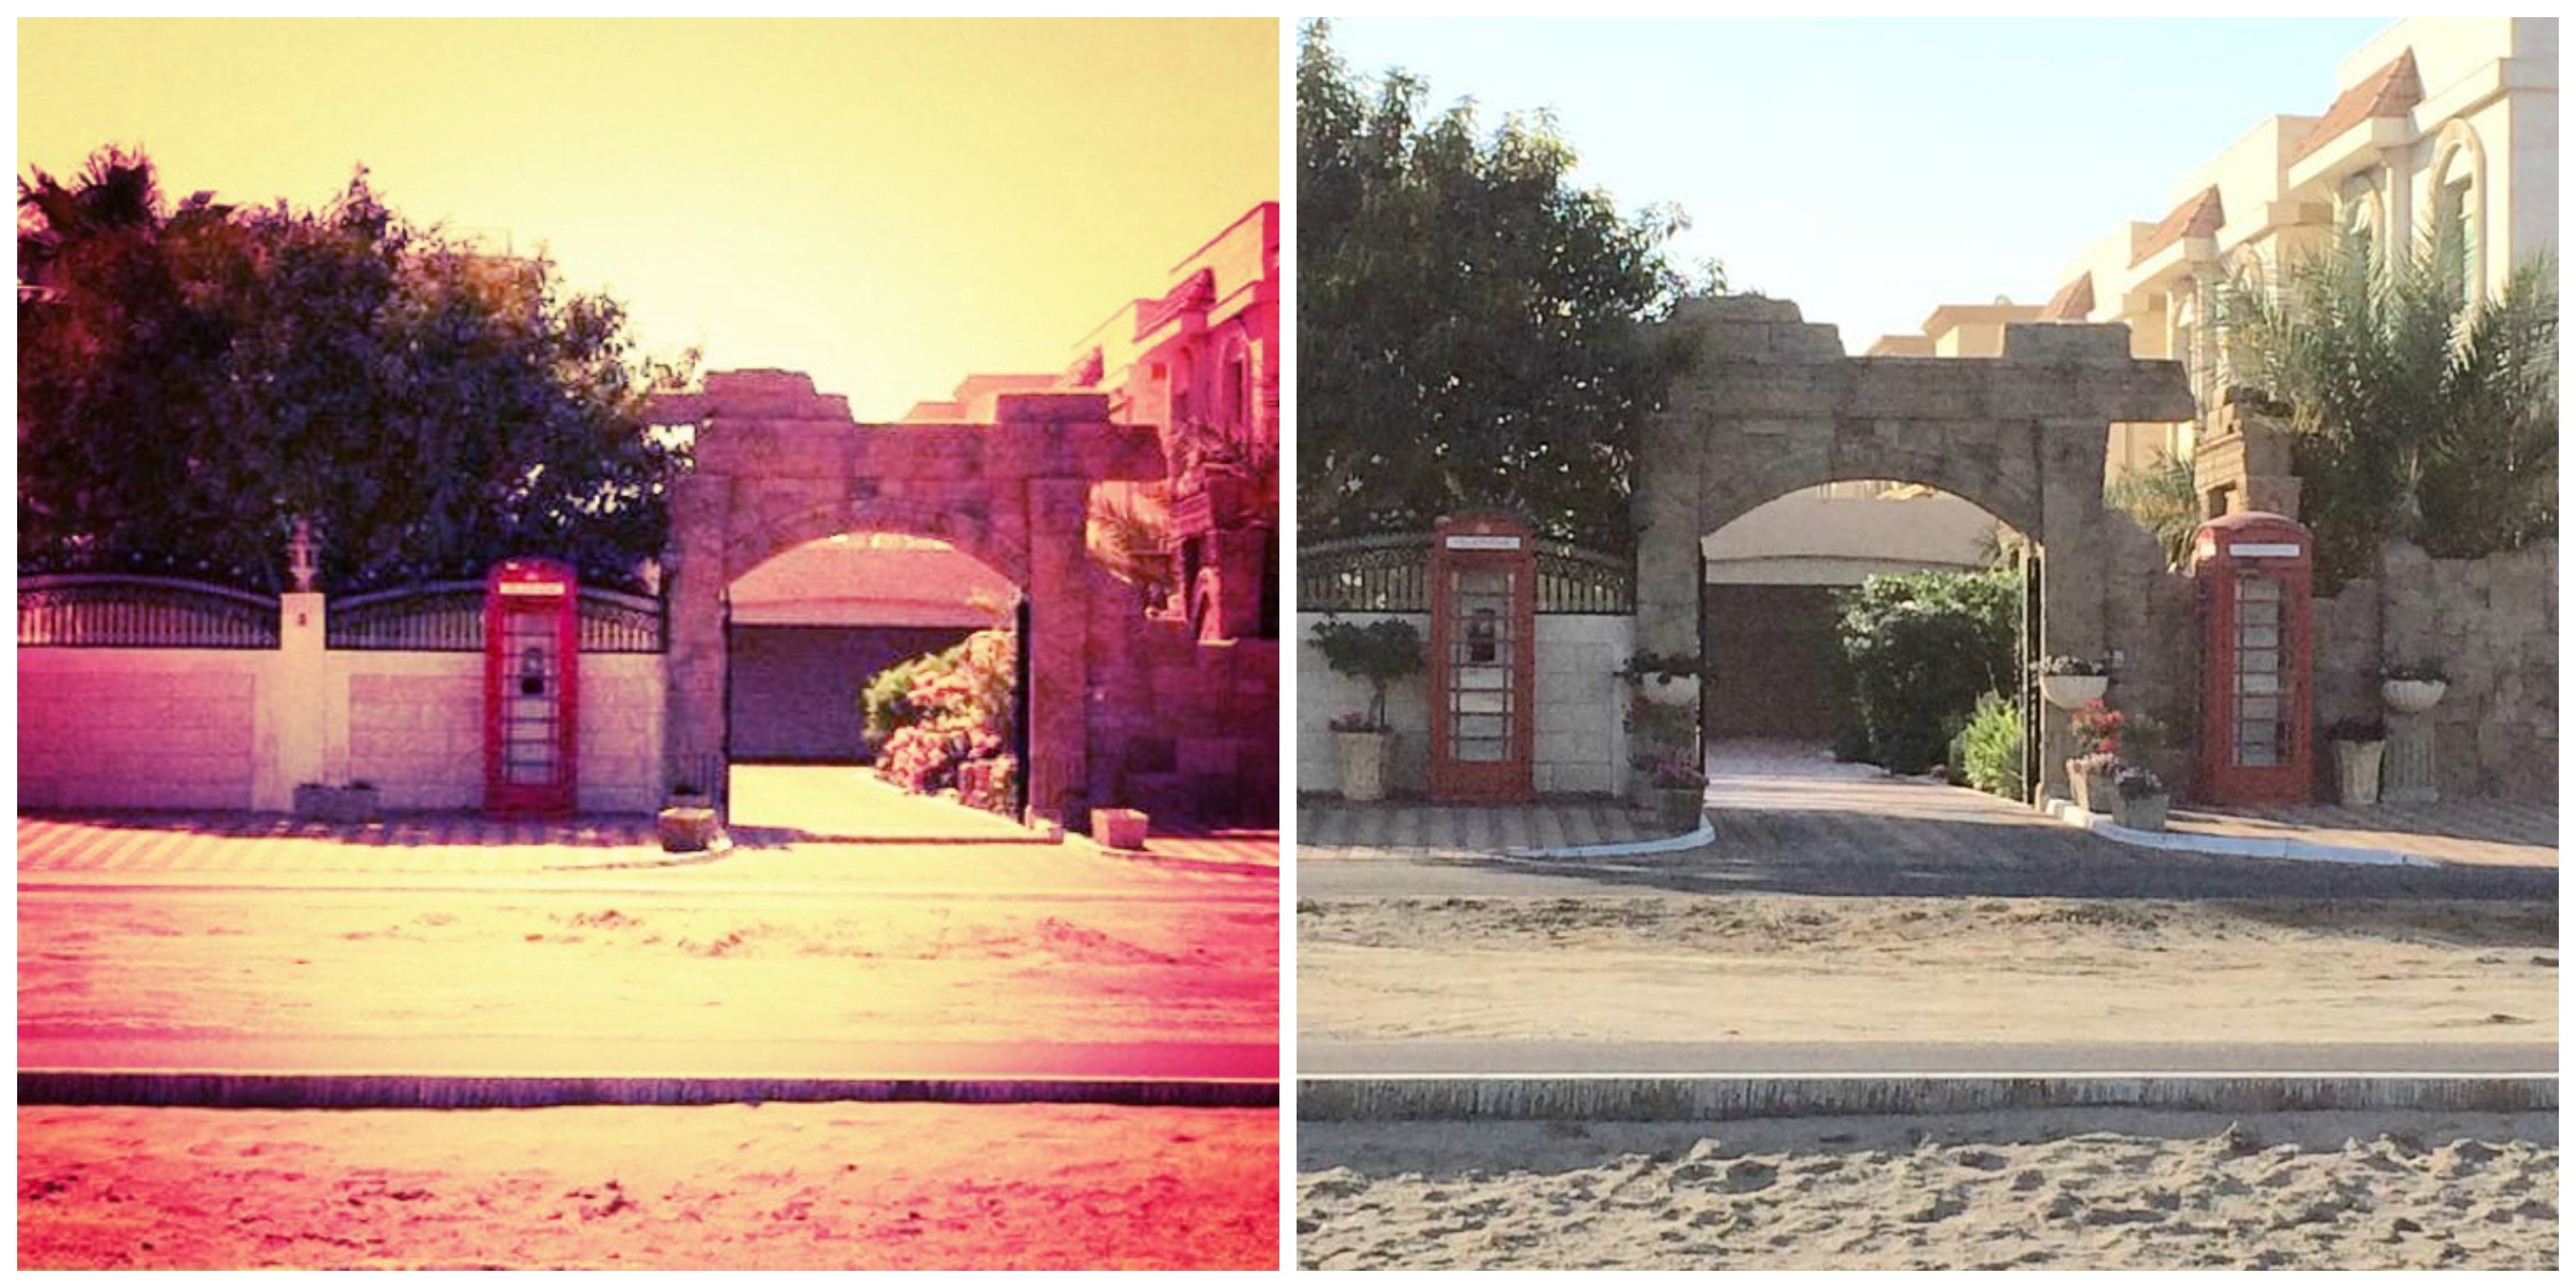 The picture on the left was taken in Abu Dhabi more than a year ago (excuse the filter – must have had sand in the brain). The one on the right is an up-to-date photo, showing their new addition.